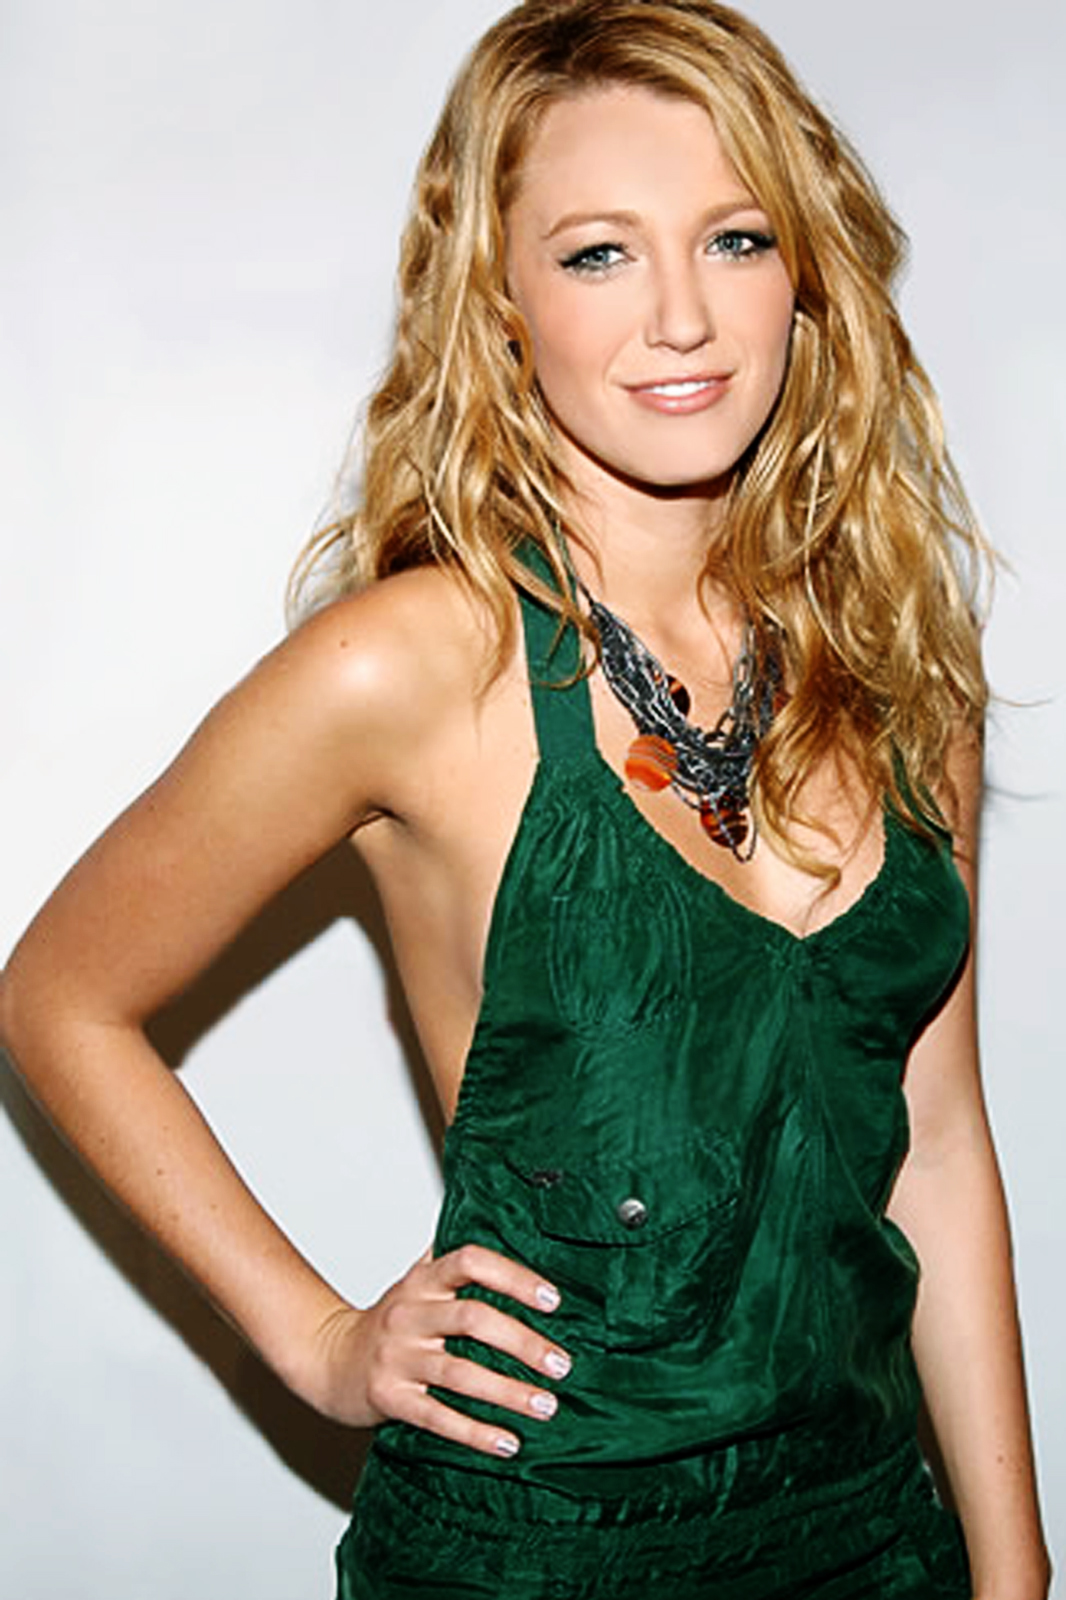 Blake Lively Wallpapers Blake Lively Sexy Pictures